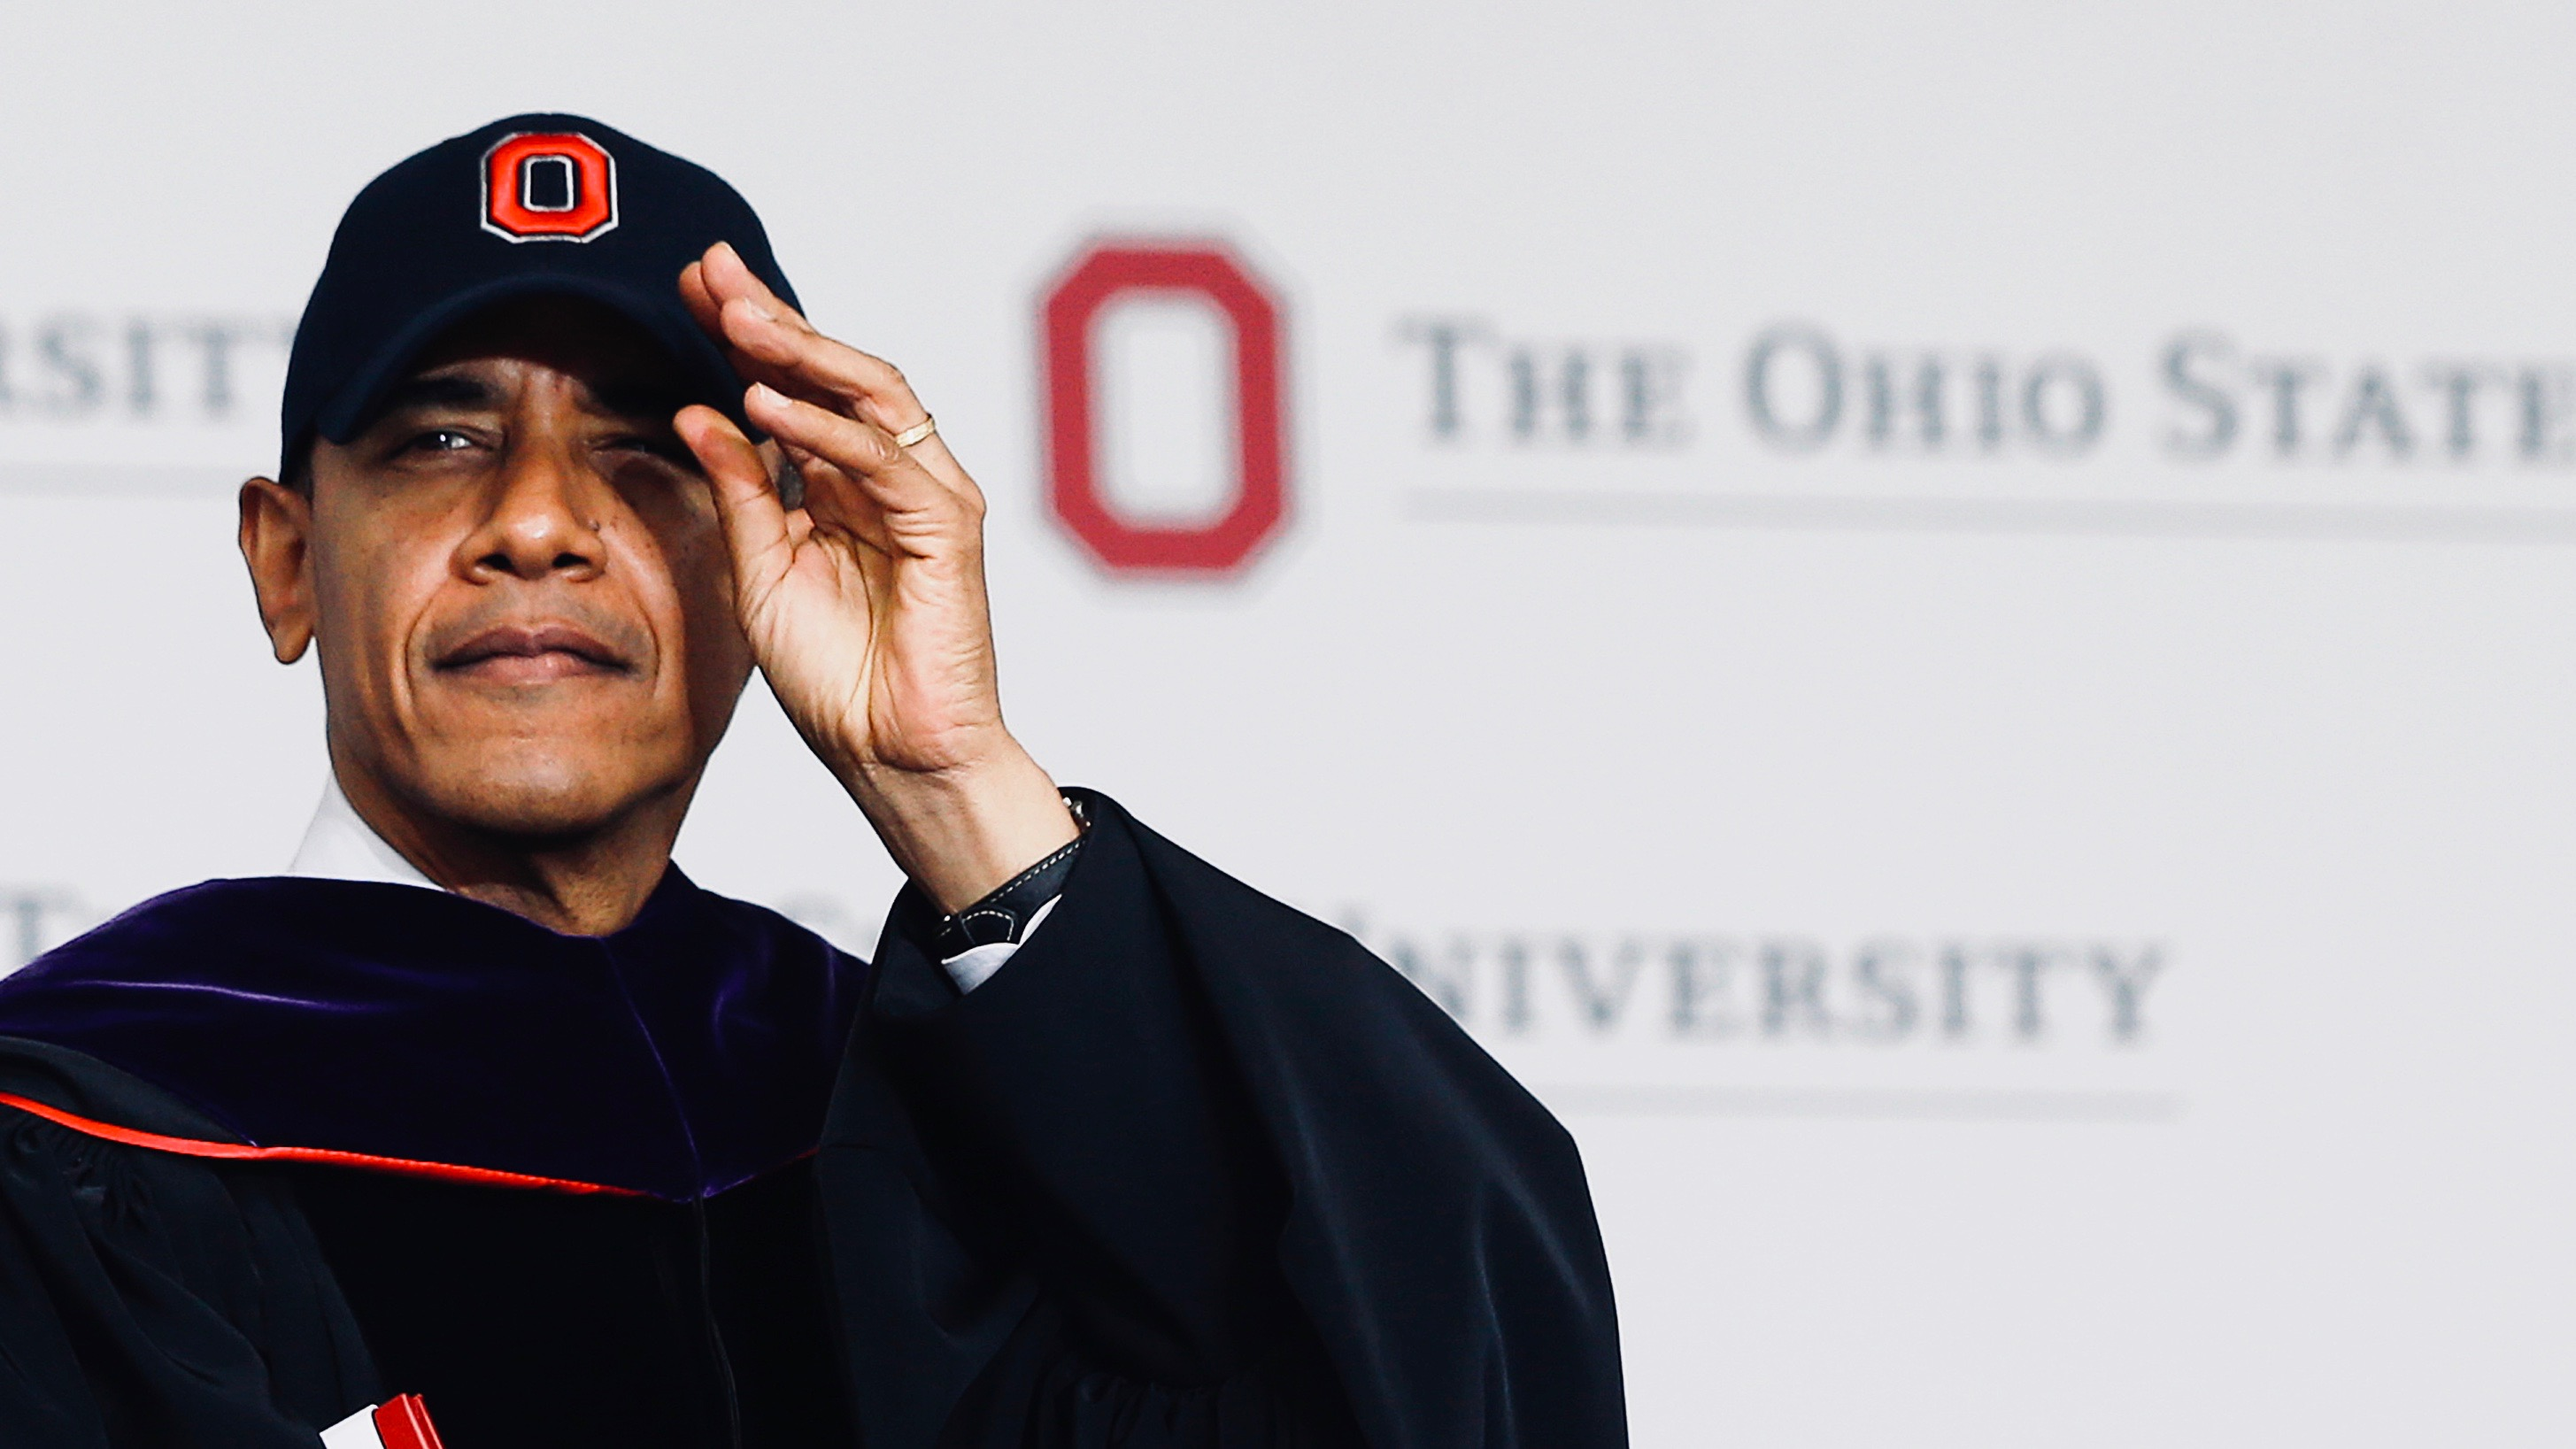 Barack Obama dons an Ohio State University cap